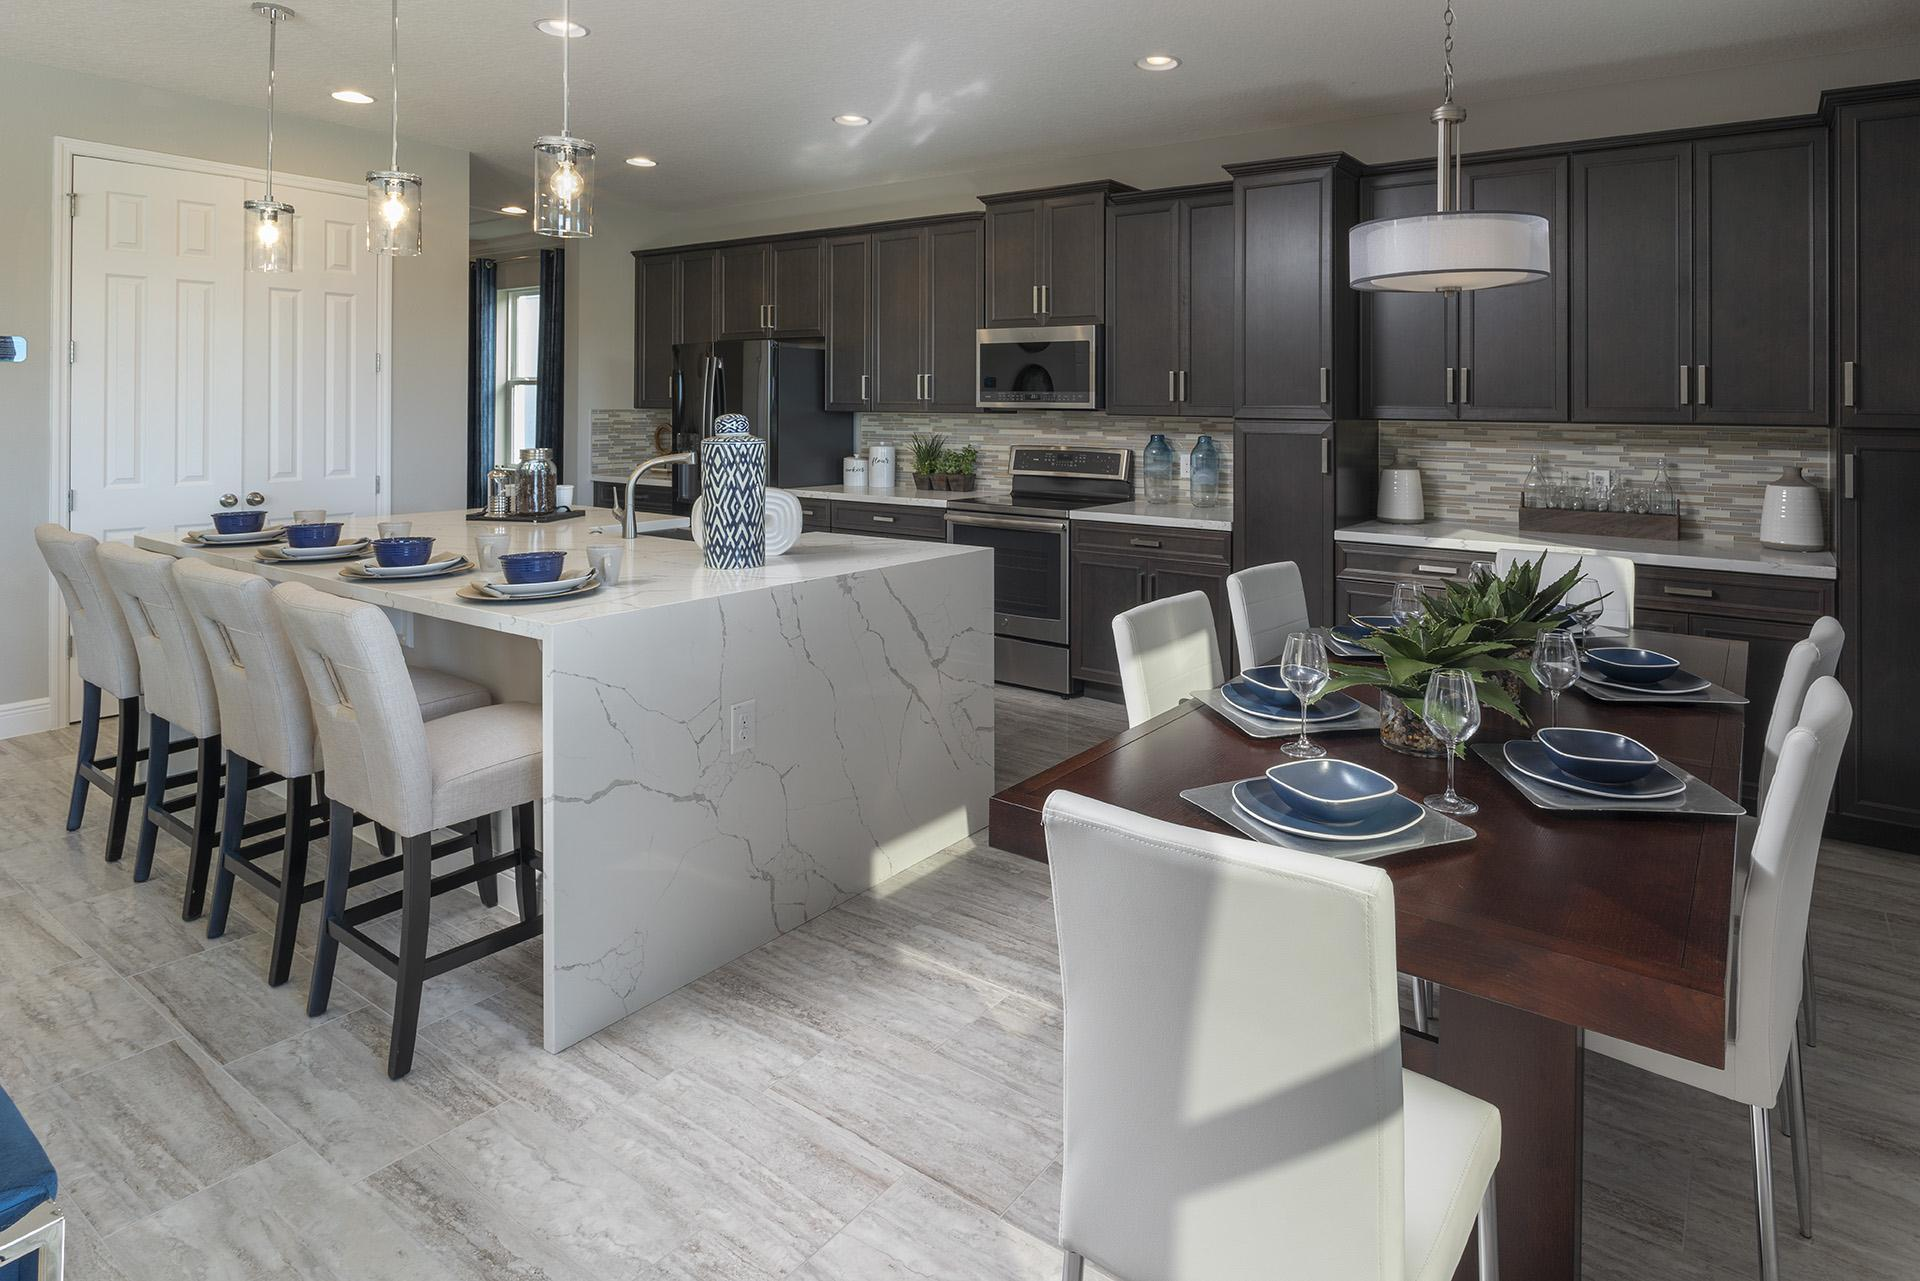 Kitchen featured in the Osceola Premier By Hanover Family Builders in Orlando, FL